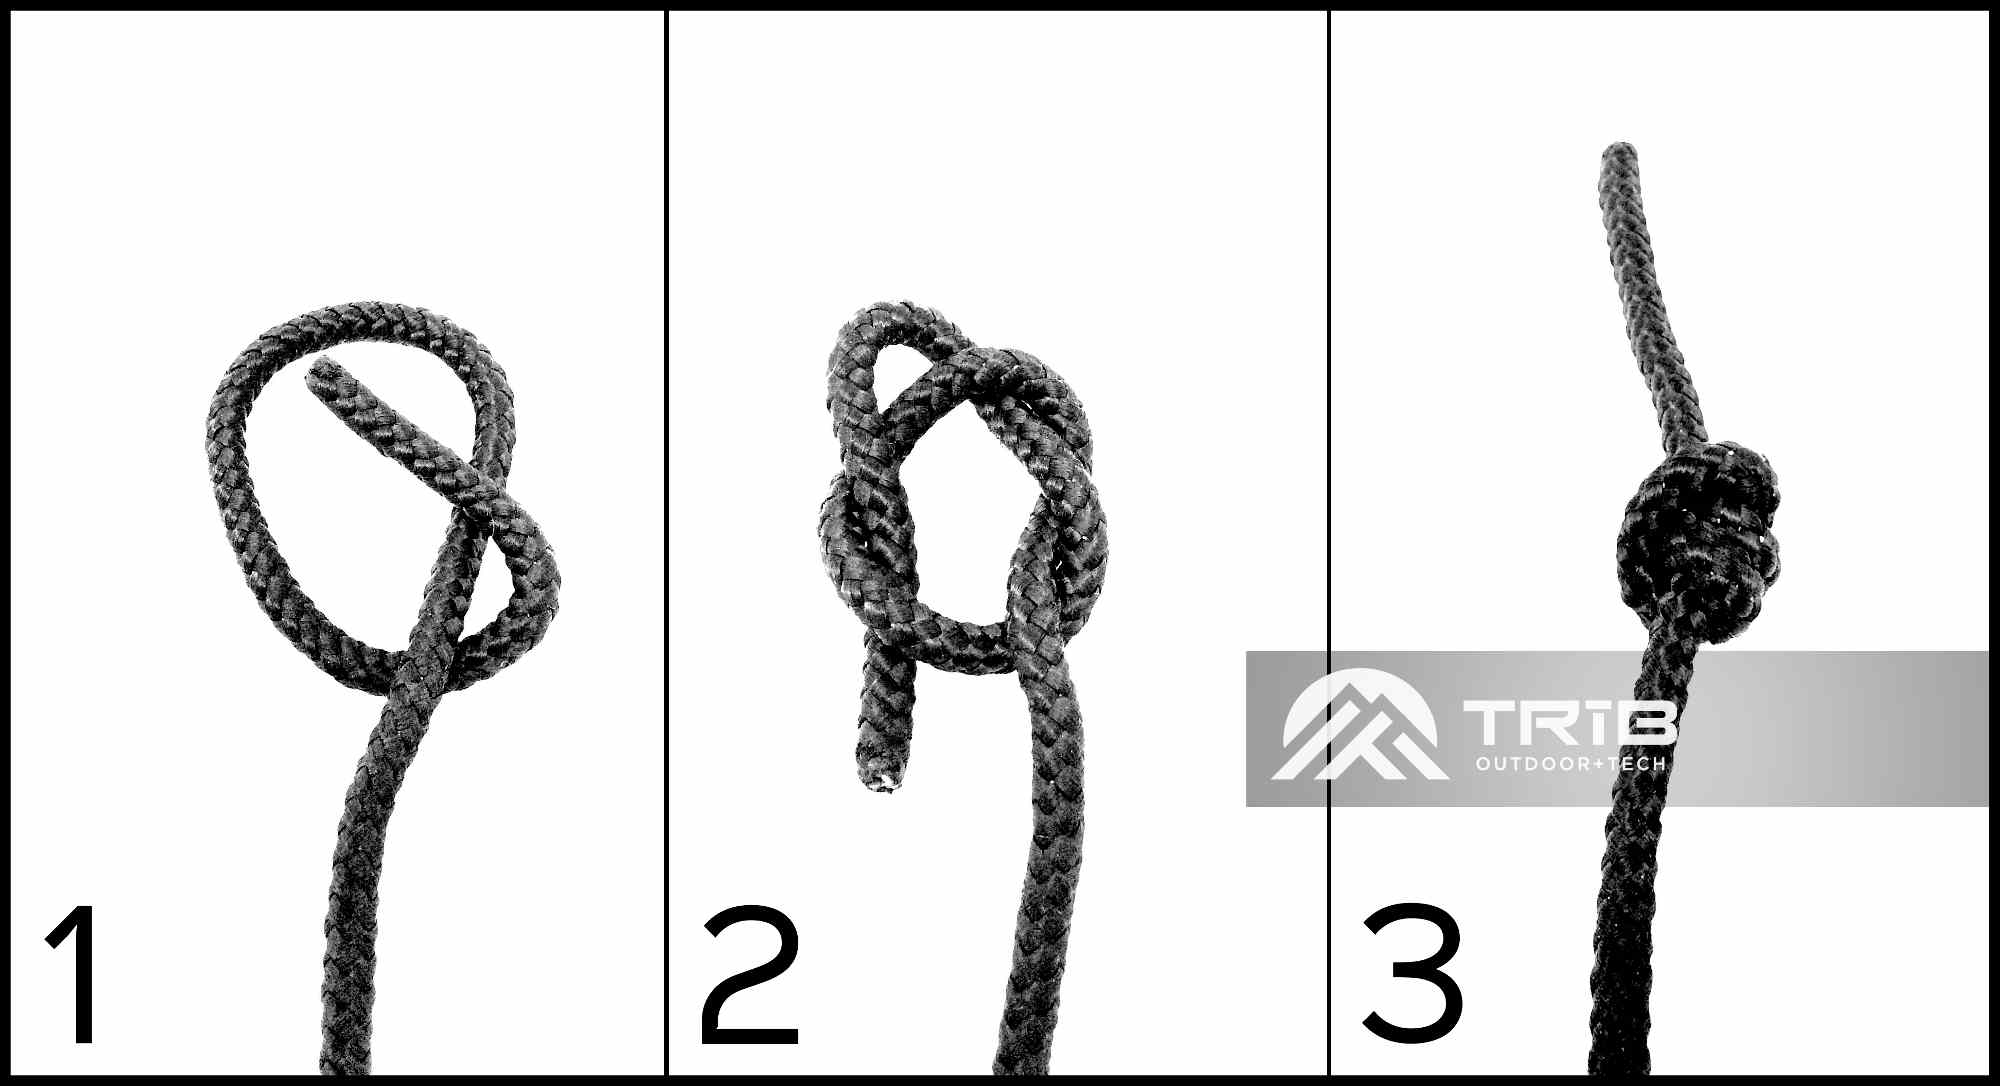 Basics steps for tying a double overhand knot